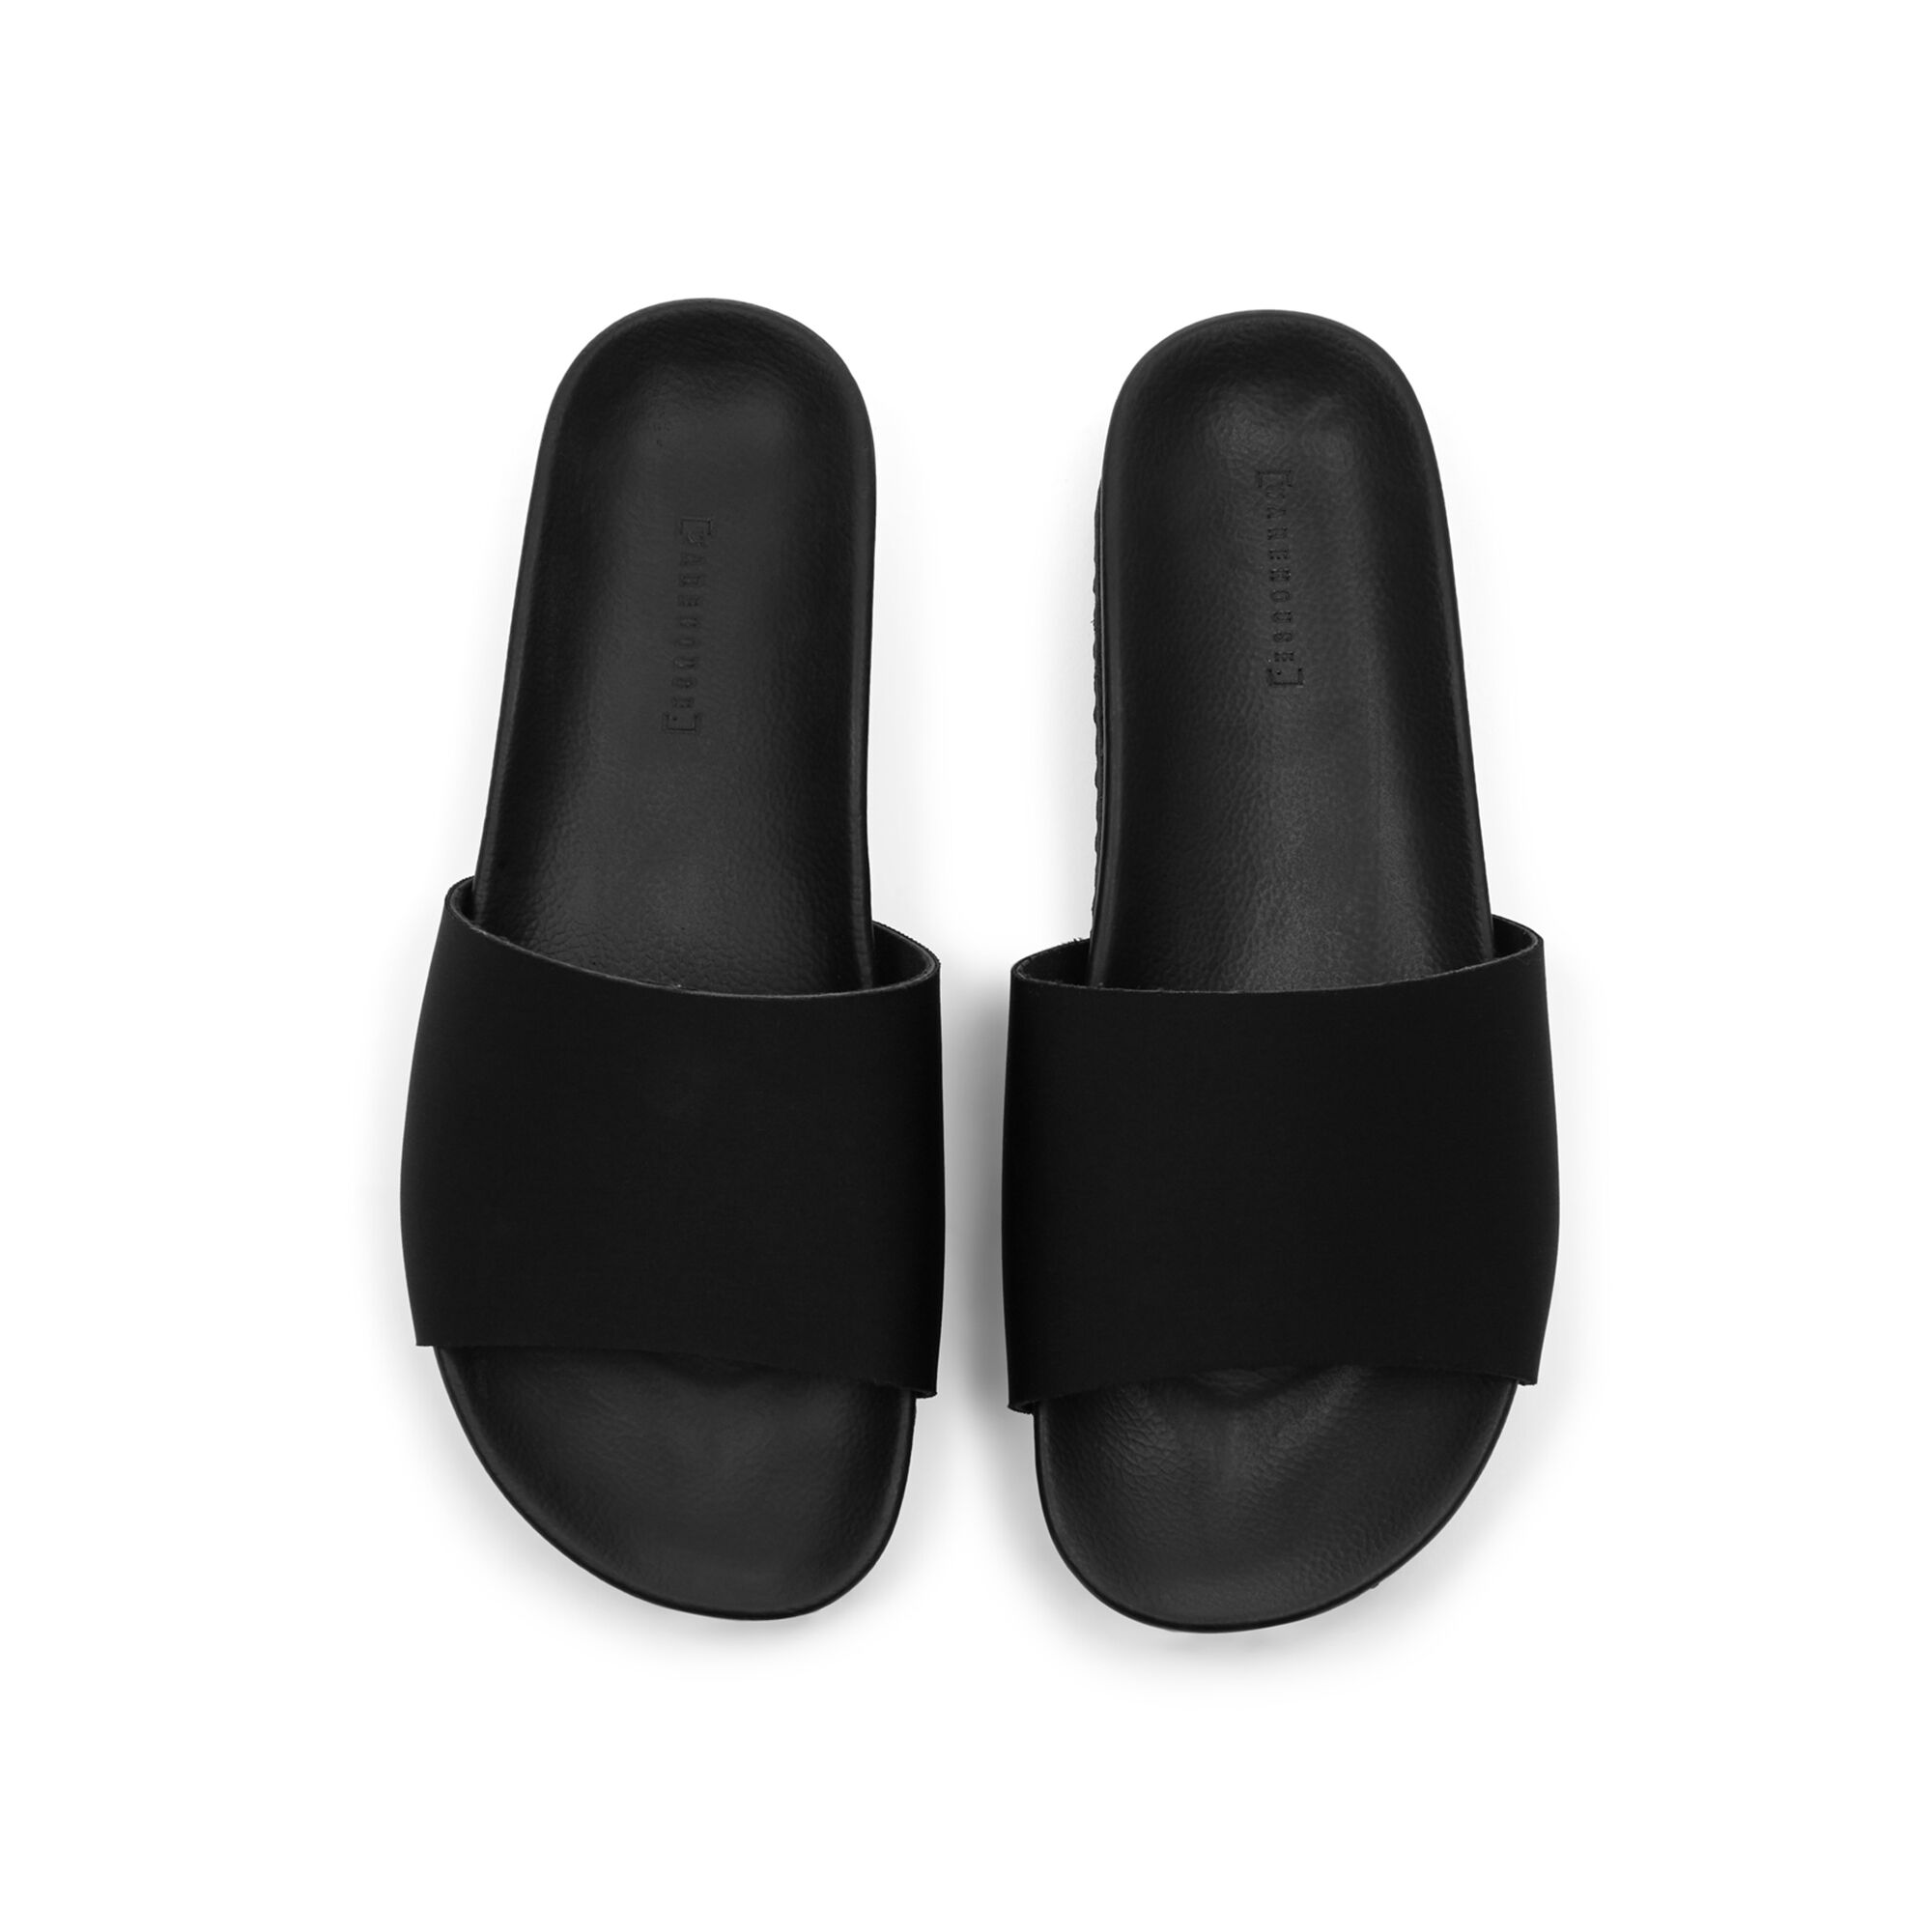 Warehouse, POOL SLIDERS Black 1